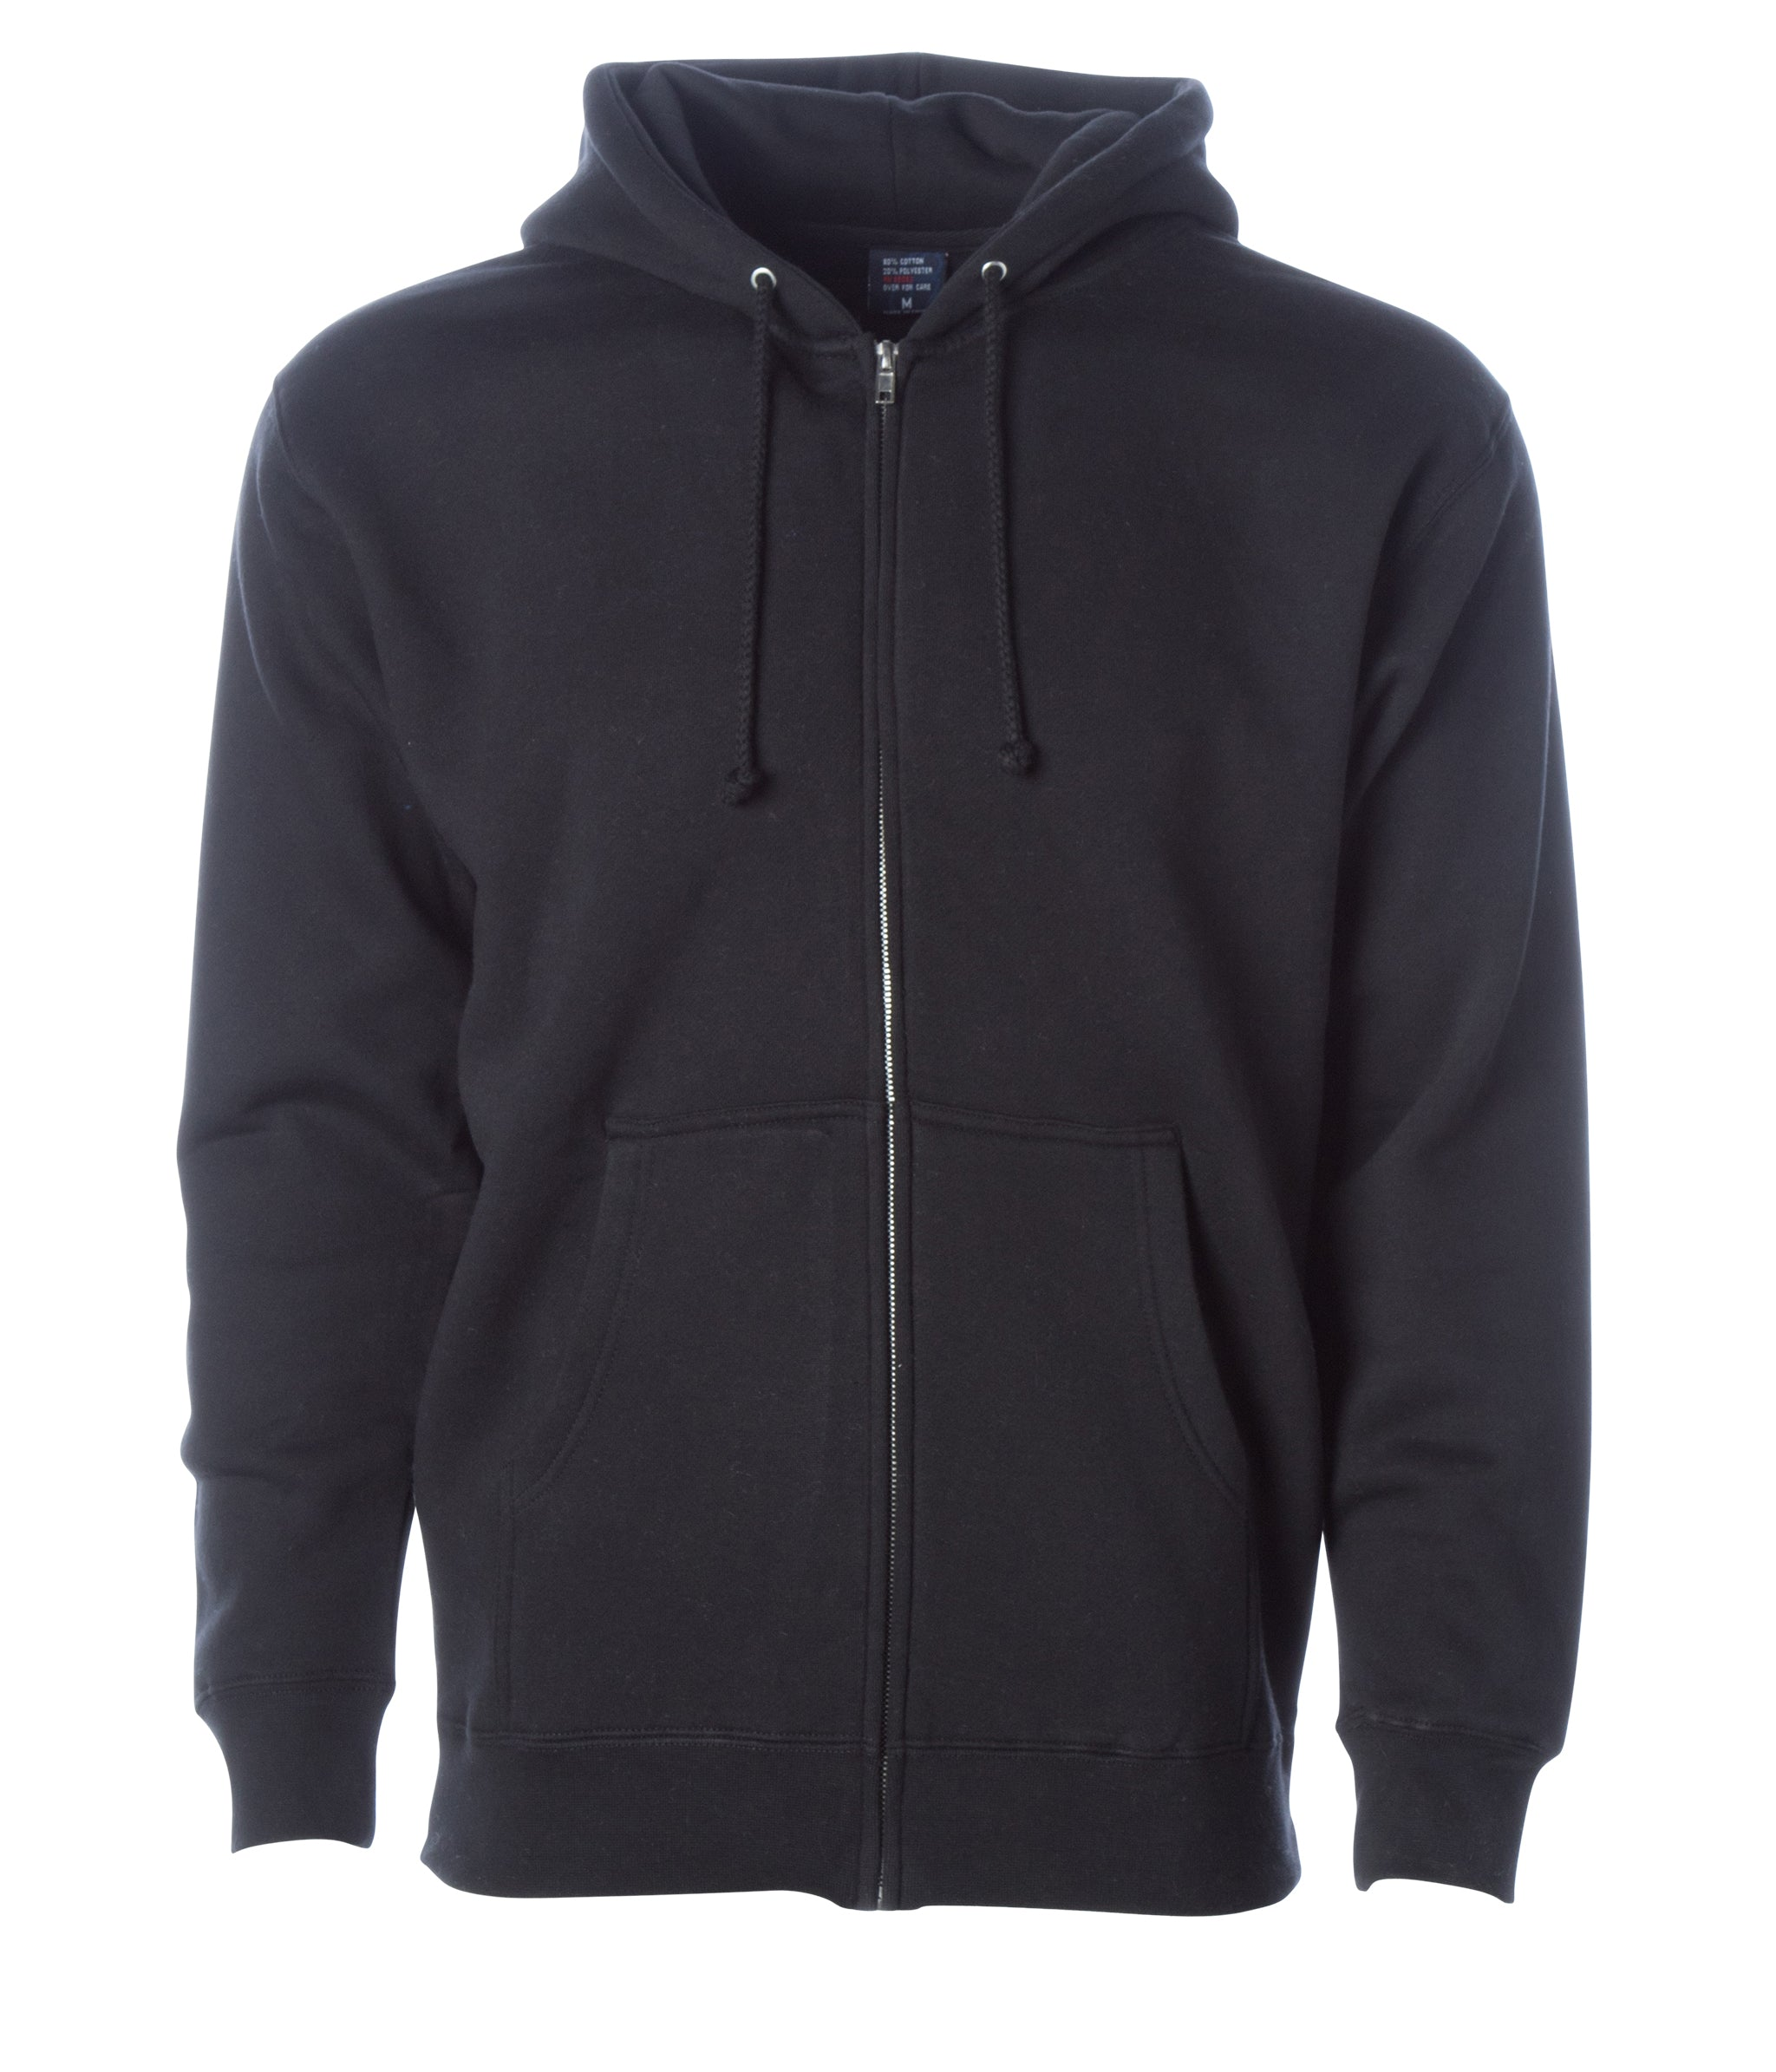 independent trading company wholesale high quality sweatshirts manufacturers